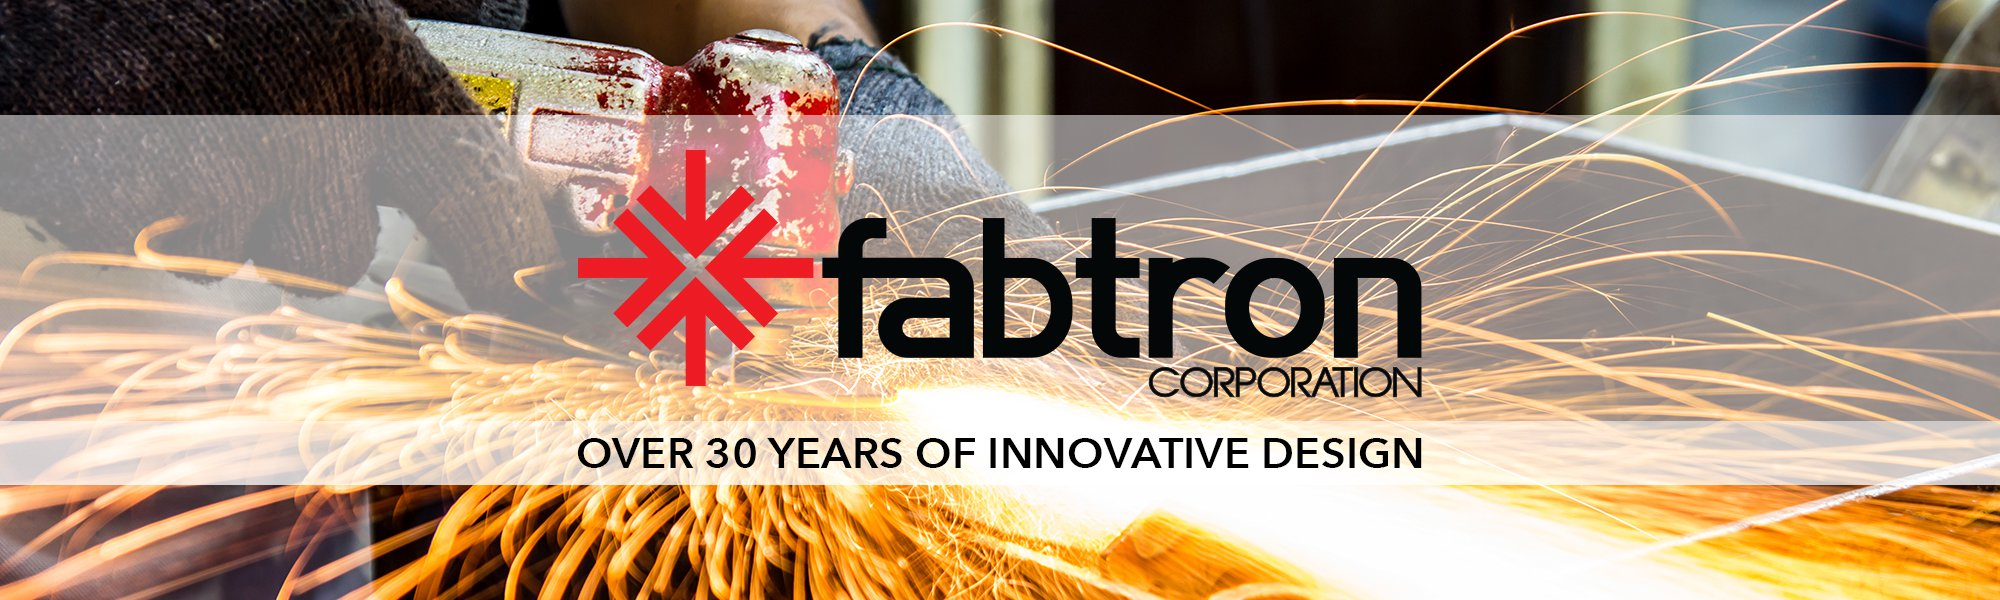 Fabtron Corporation - Over 30 Years of Innovative Design